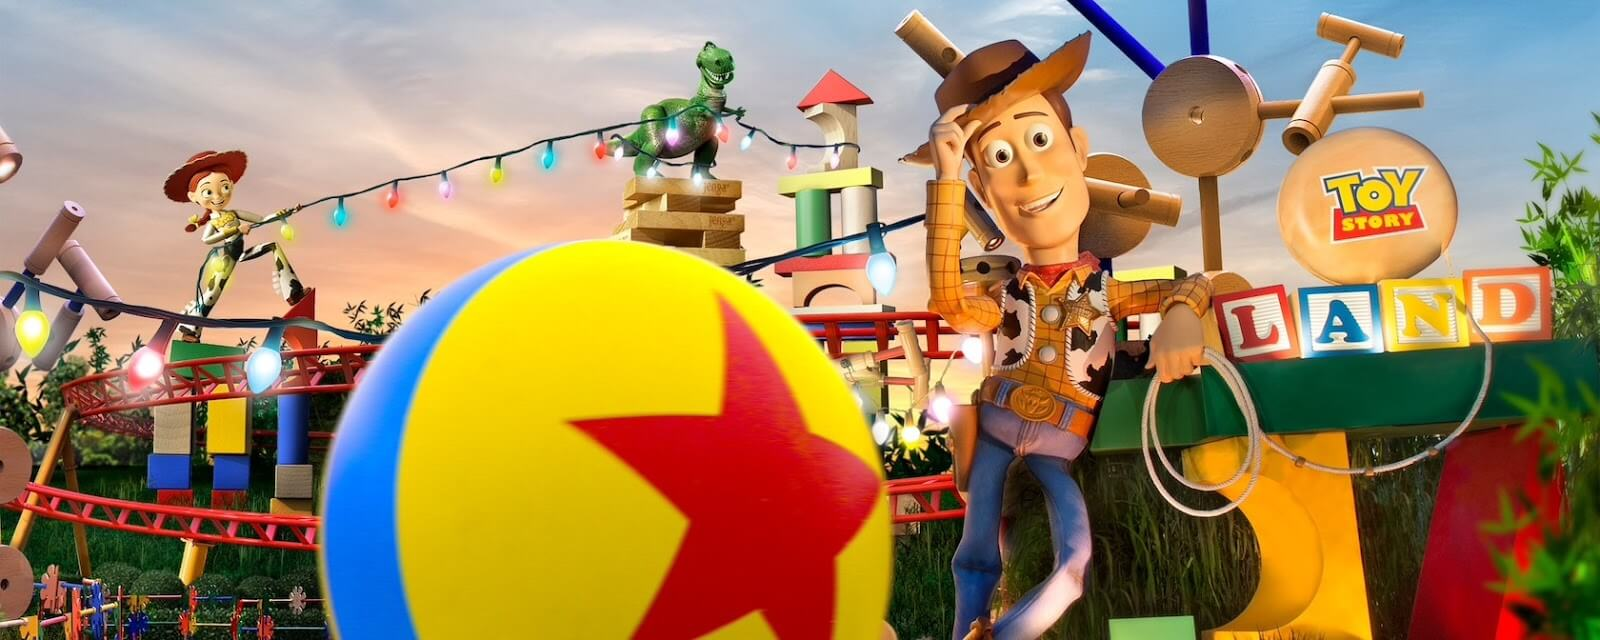 Toy Story Land is Finally Here!